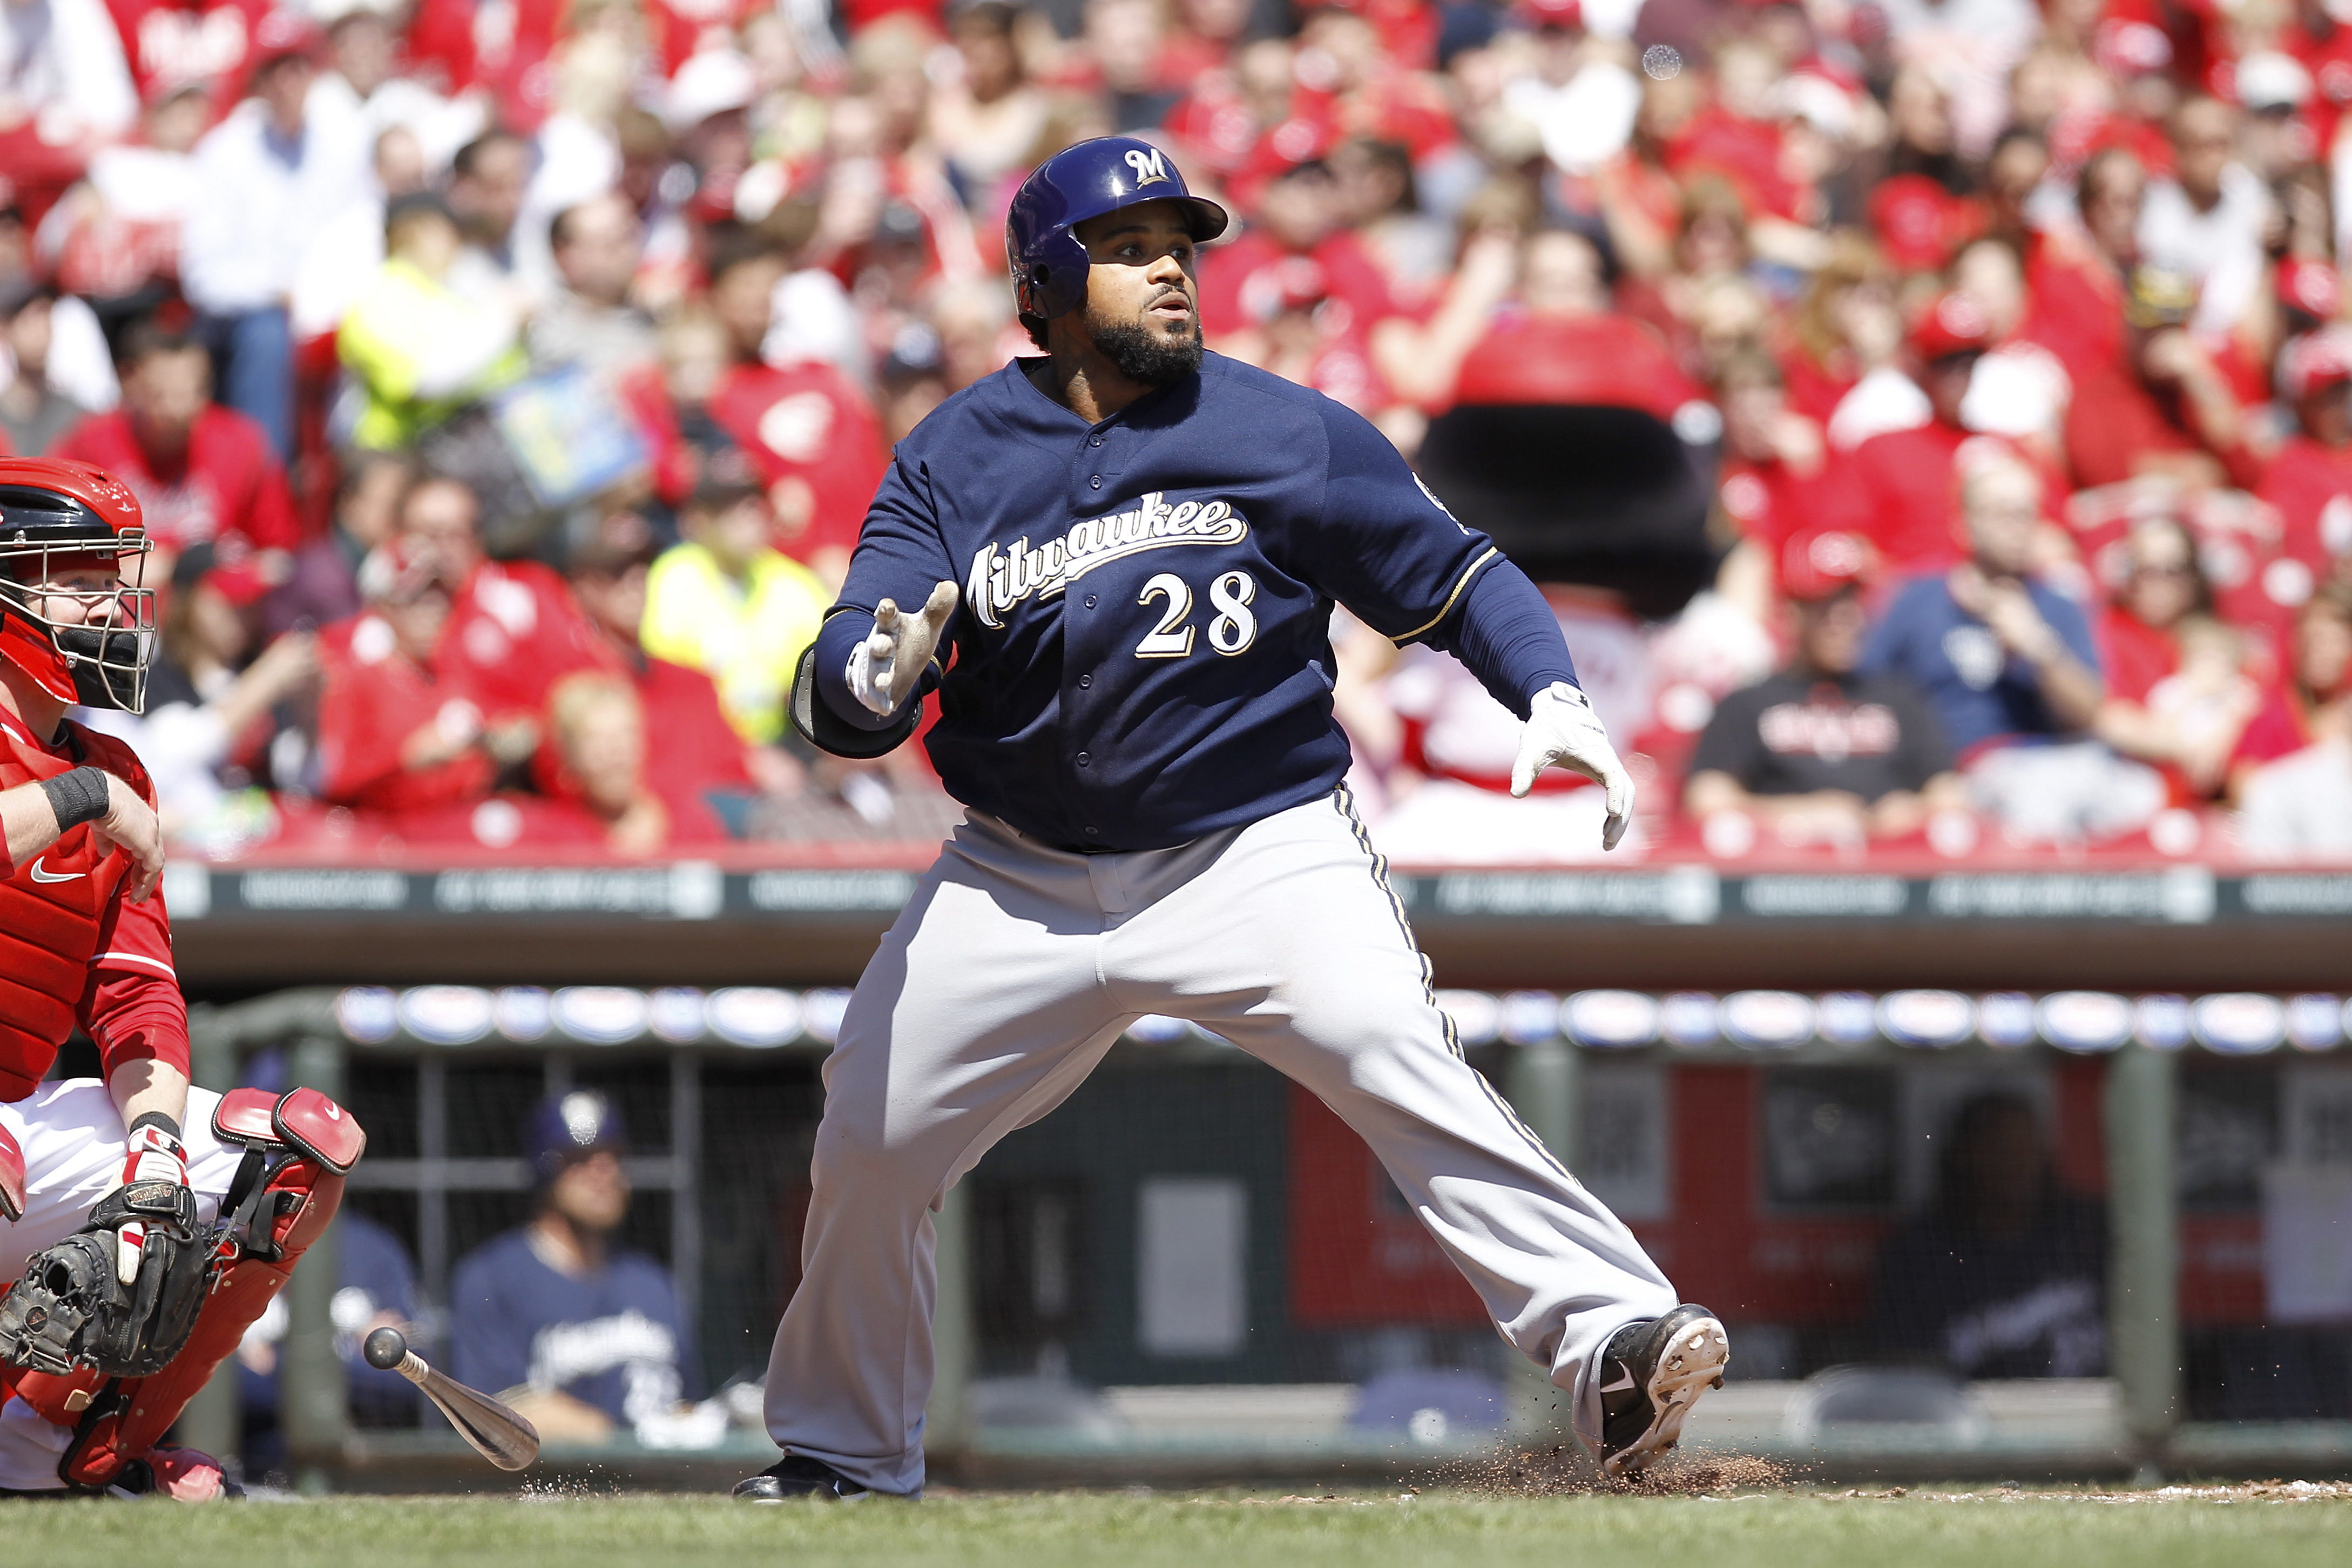 CINCINNATI, OH - APRIL 3: Prince Fielder #28 of the Milwaukee Brewers hits the ball against the Cincinnati Reds at Great American Ball Park on April 3, 2011 in Cincinnati, Ohio. The Reds won 12-3. (Photo by Joe Robbins/Getty Images)